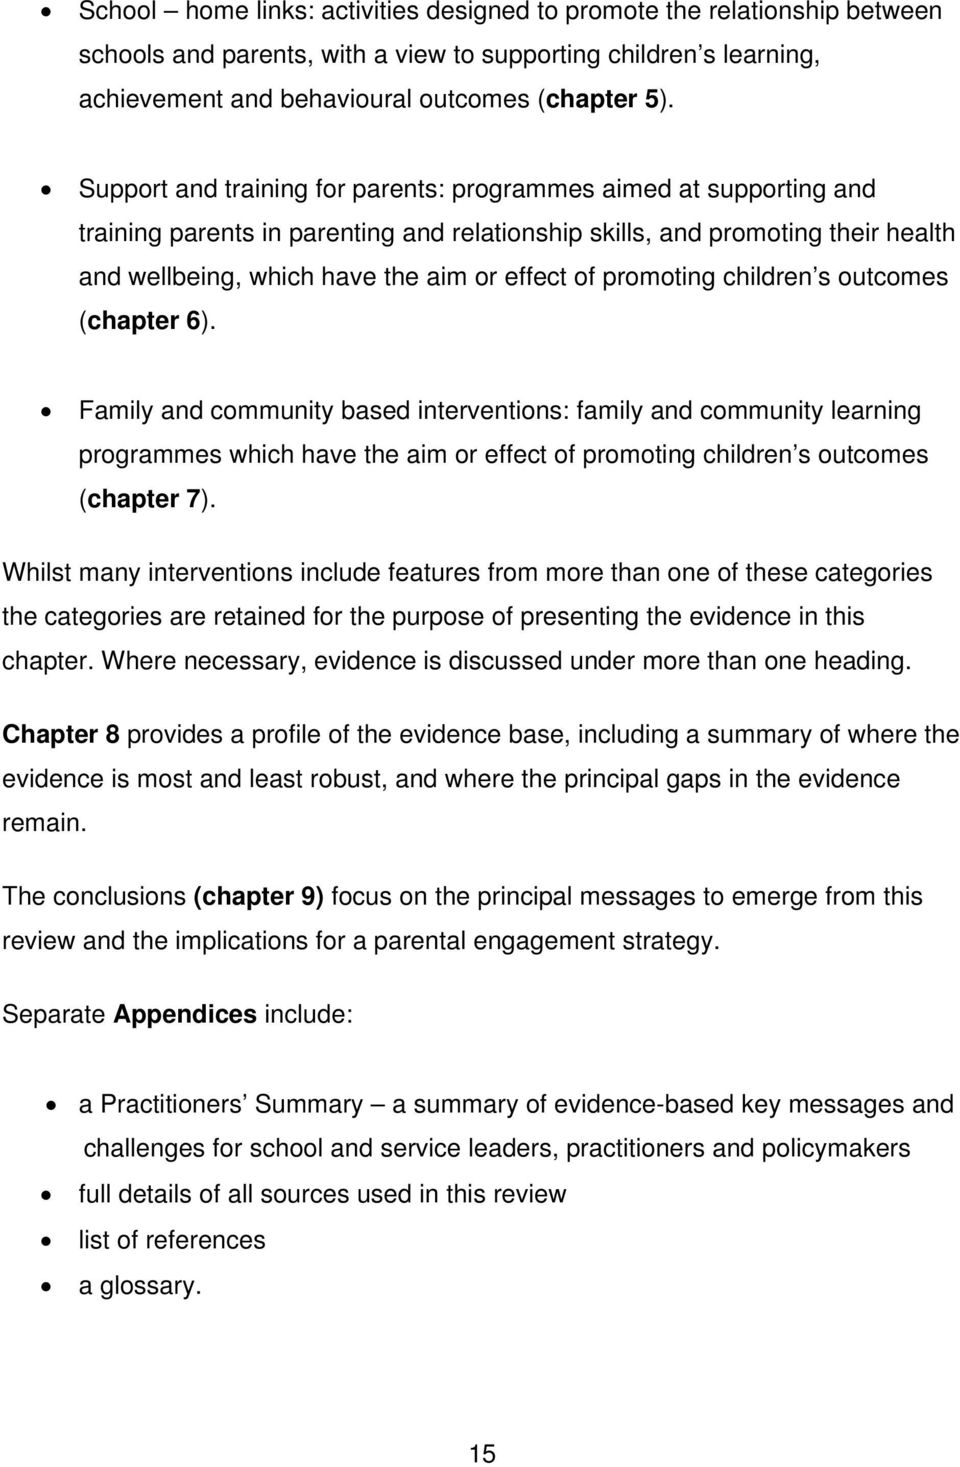 promoting children s outcomes (chapter 6). Family and community based interventions: family and community learning programmes which have the aim or effect of promoting children s outcomes (chapter 7).